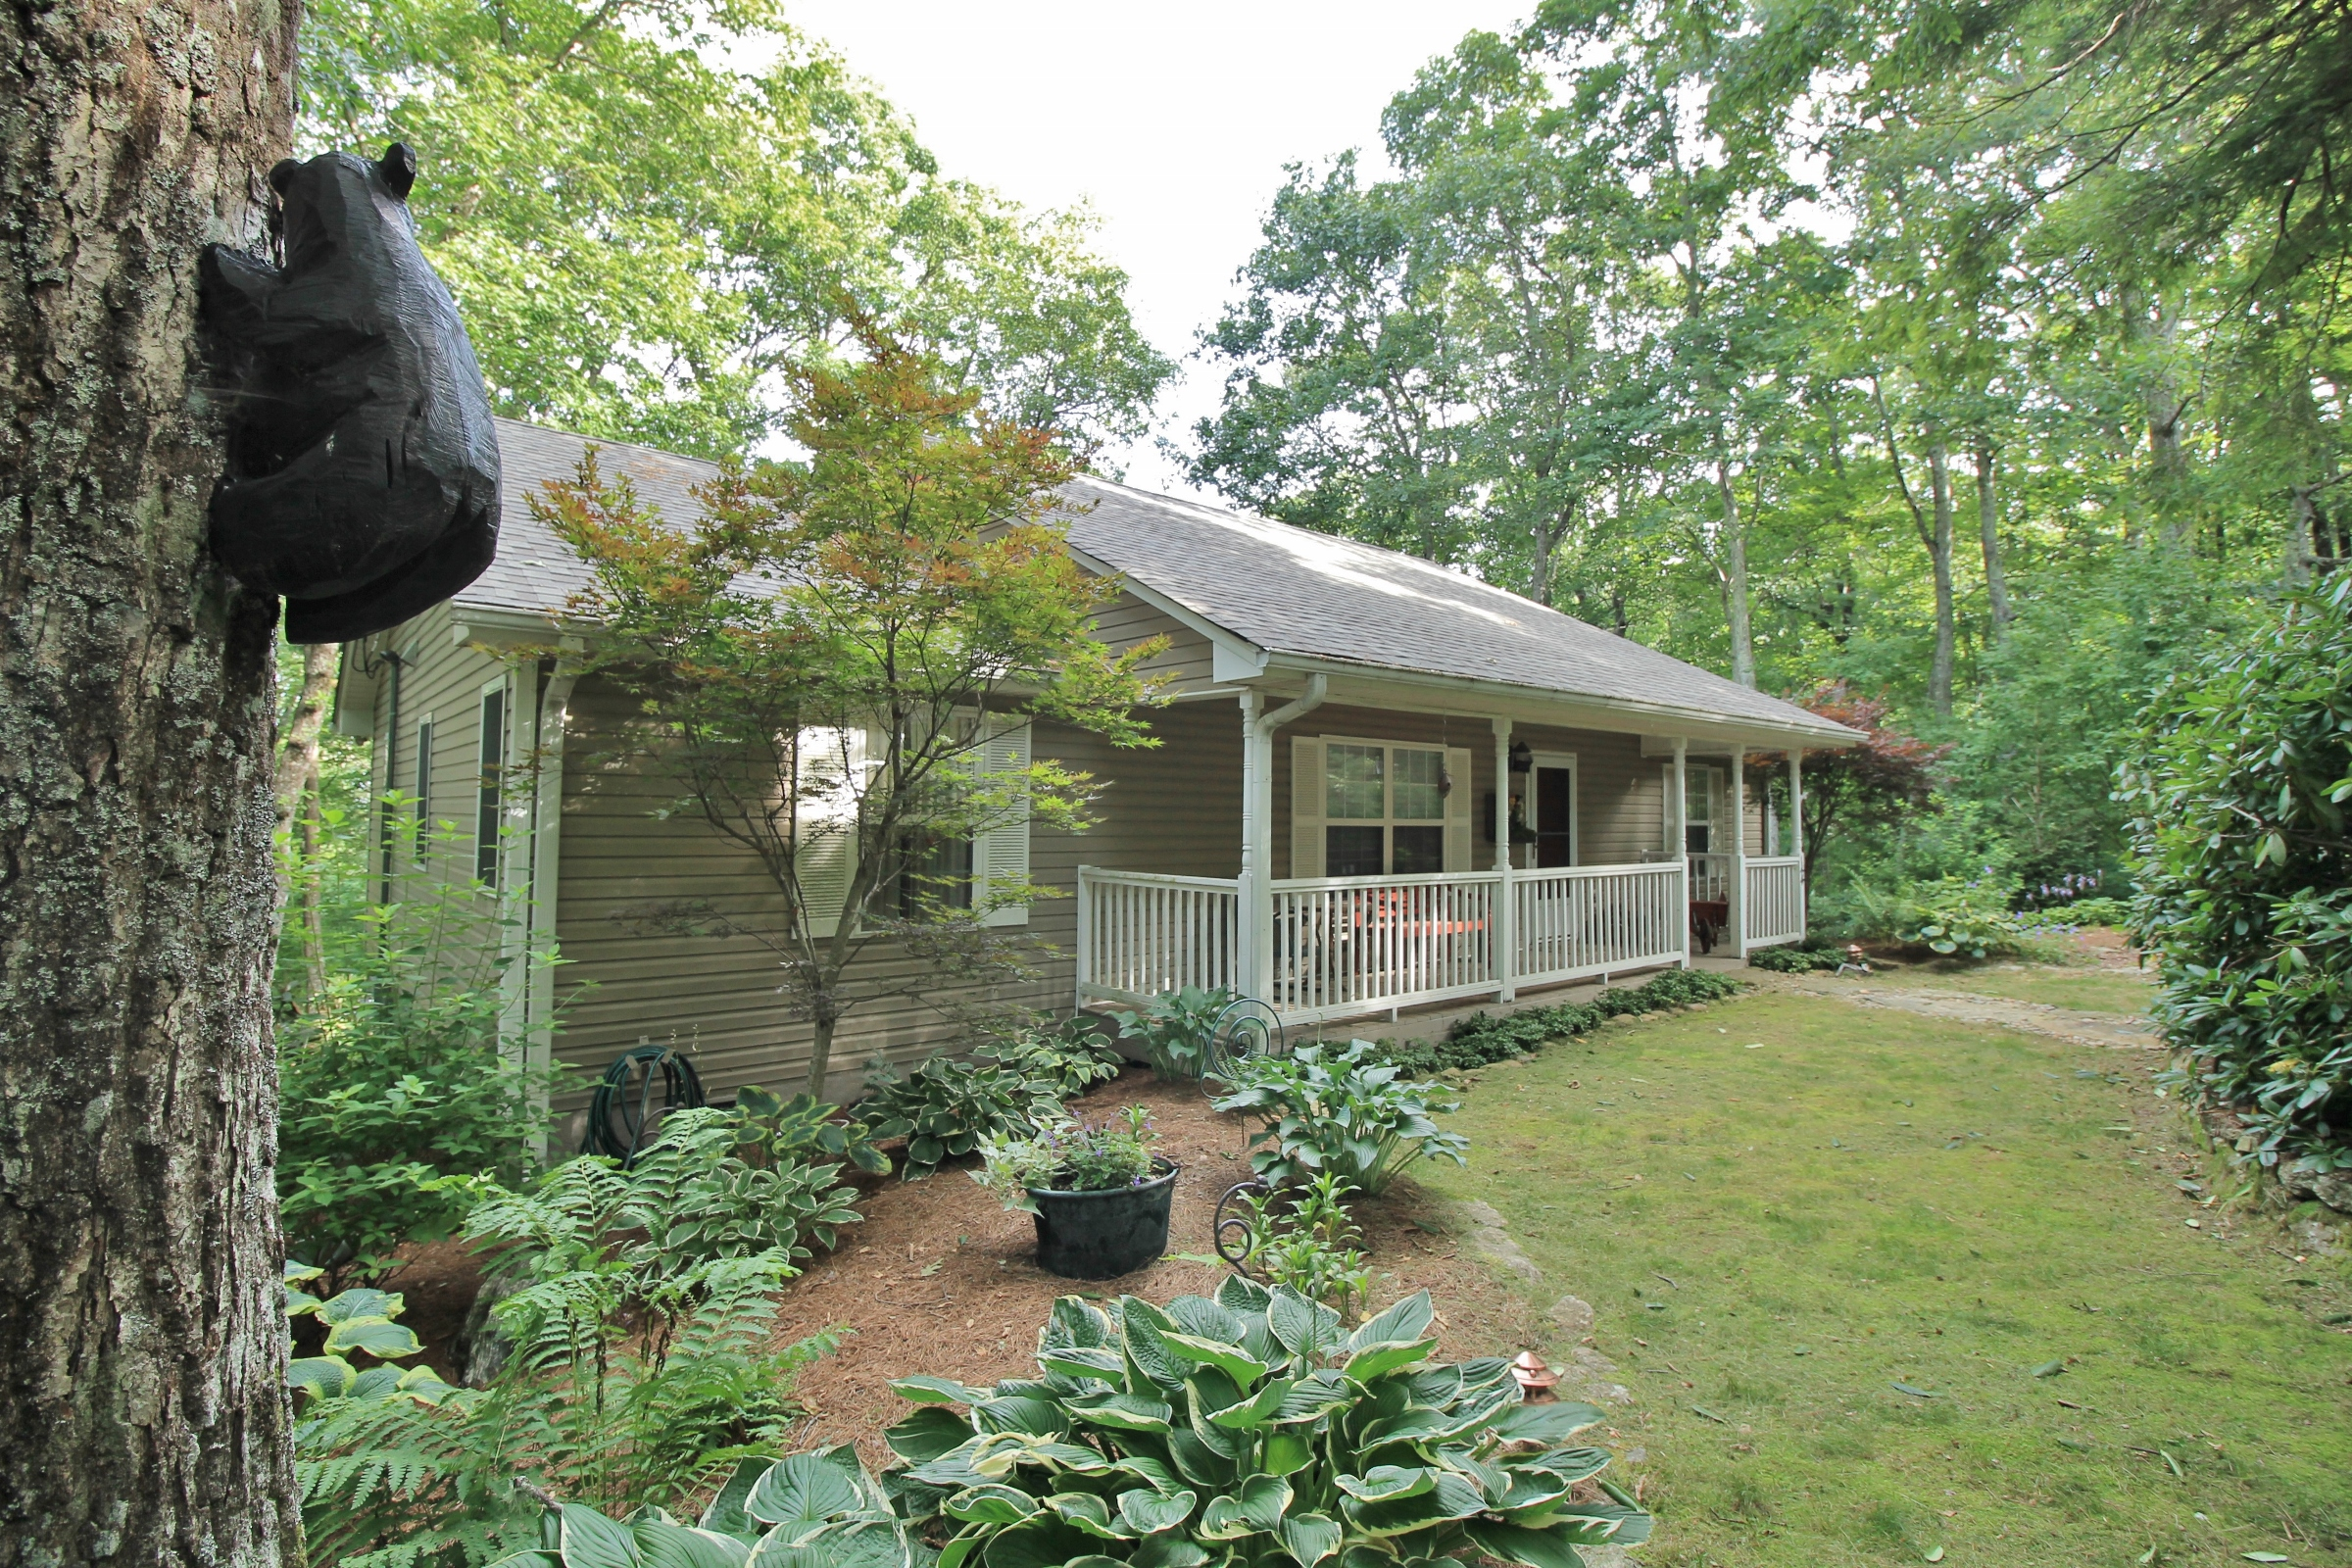 Single Family Home for Sale at 144 Pond Road Highlands, North Carolina 28741 United States